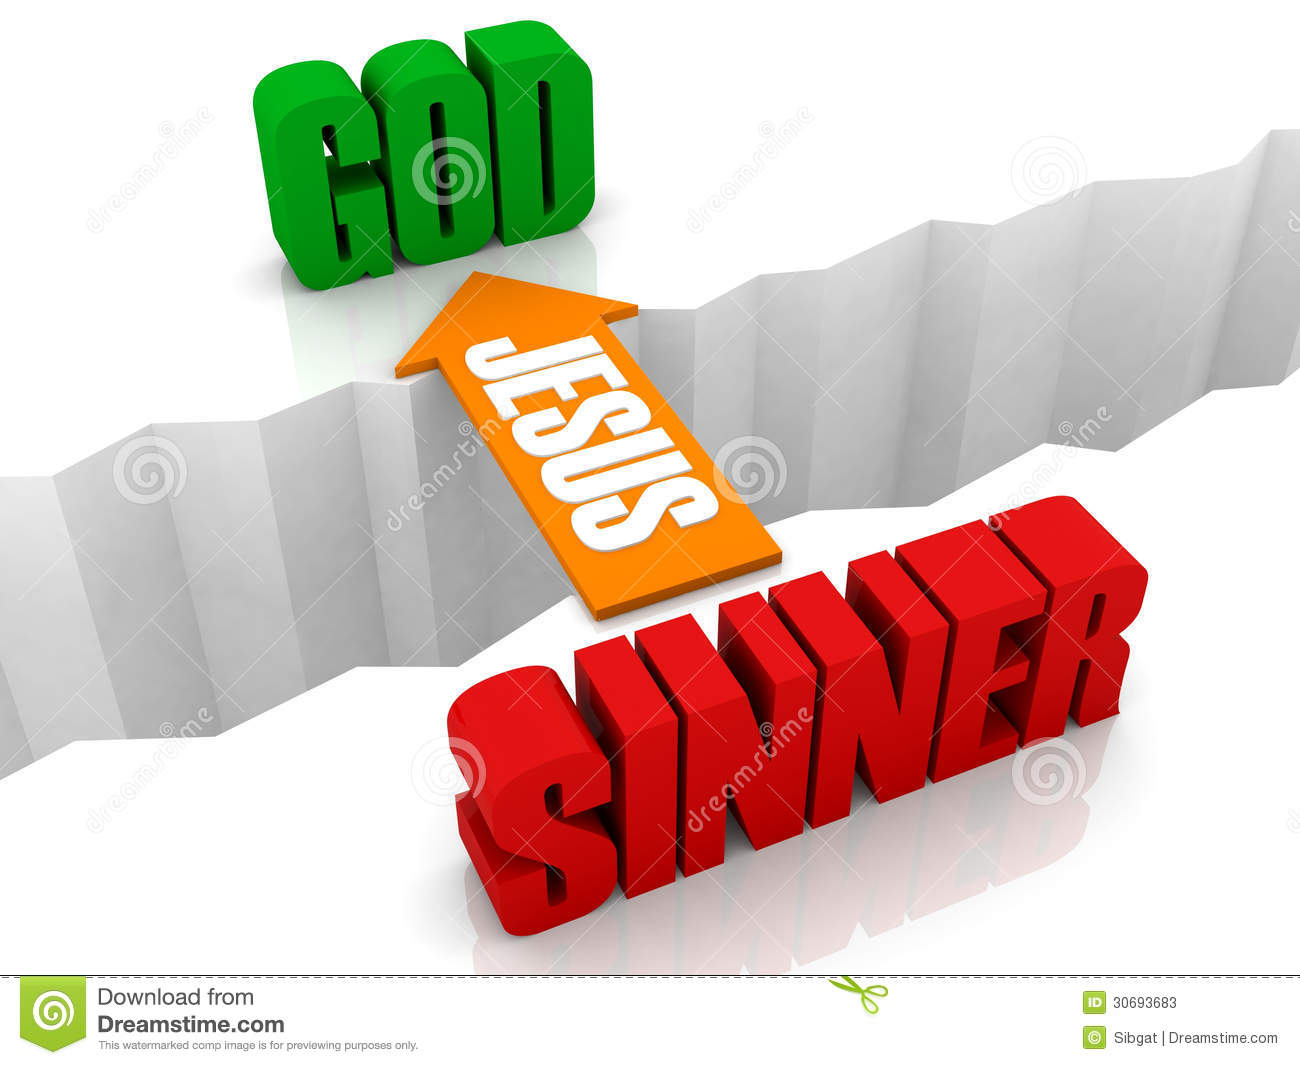 Jesus Is The Bridge From SINNER To GOD. Stock Photos - Image: 30693683